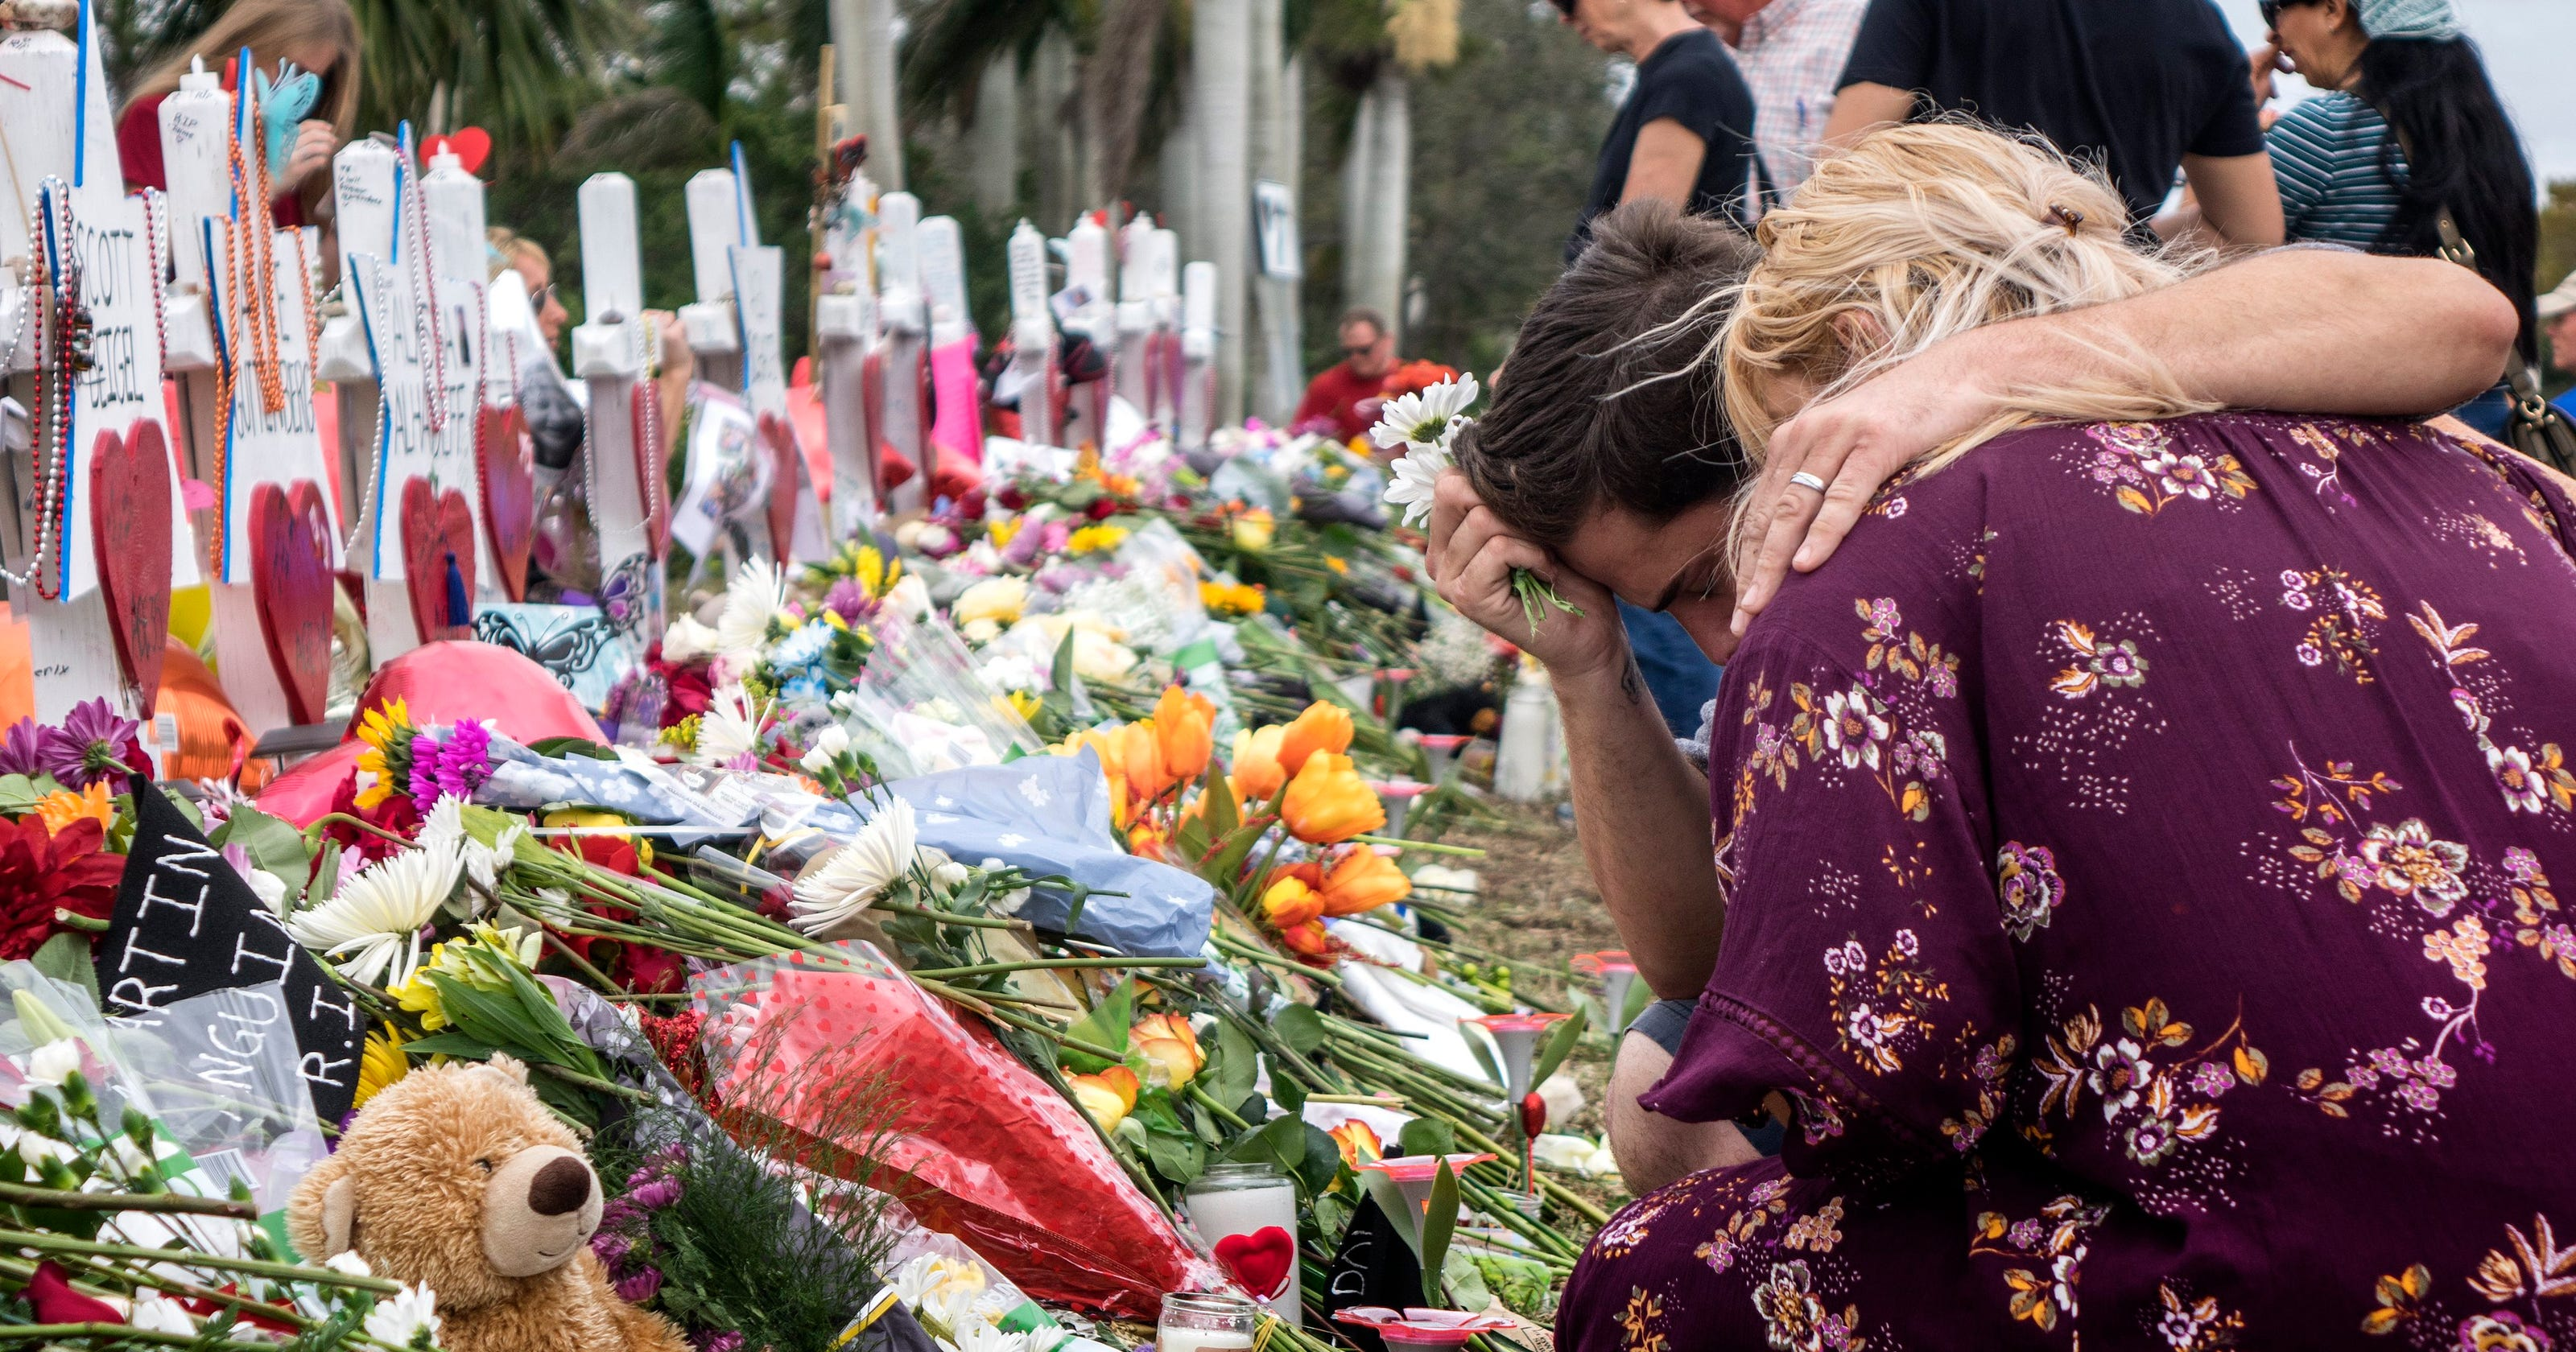 Florida School Shooting Survivors Head To Tallahassee To Take On